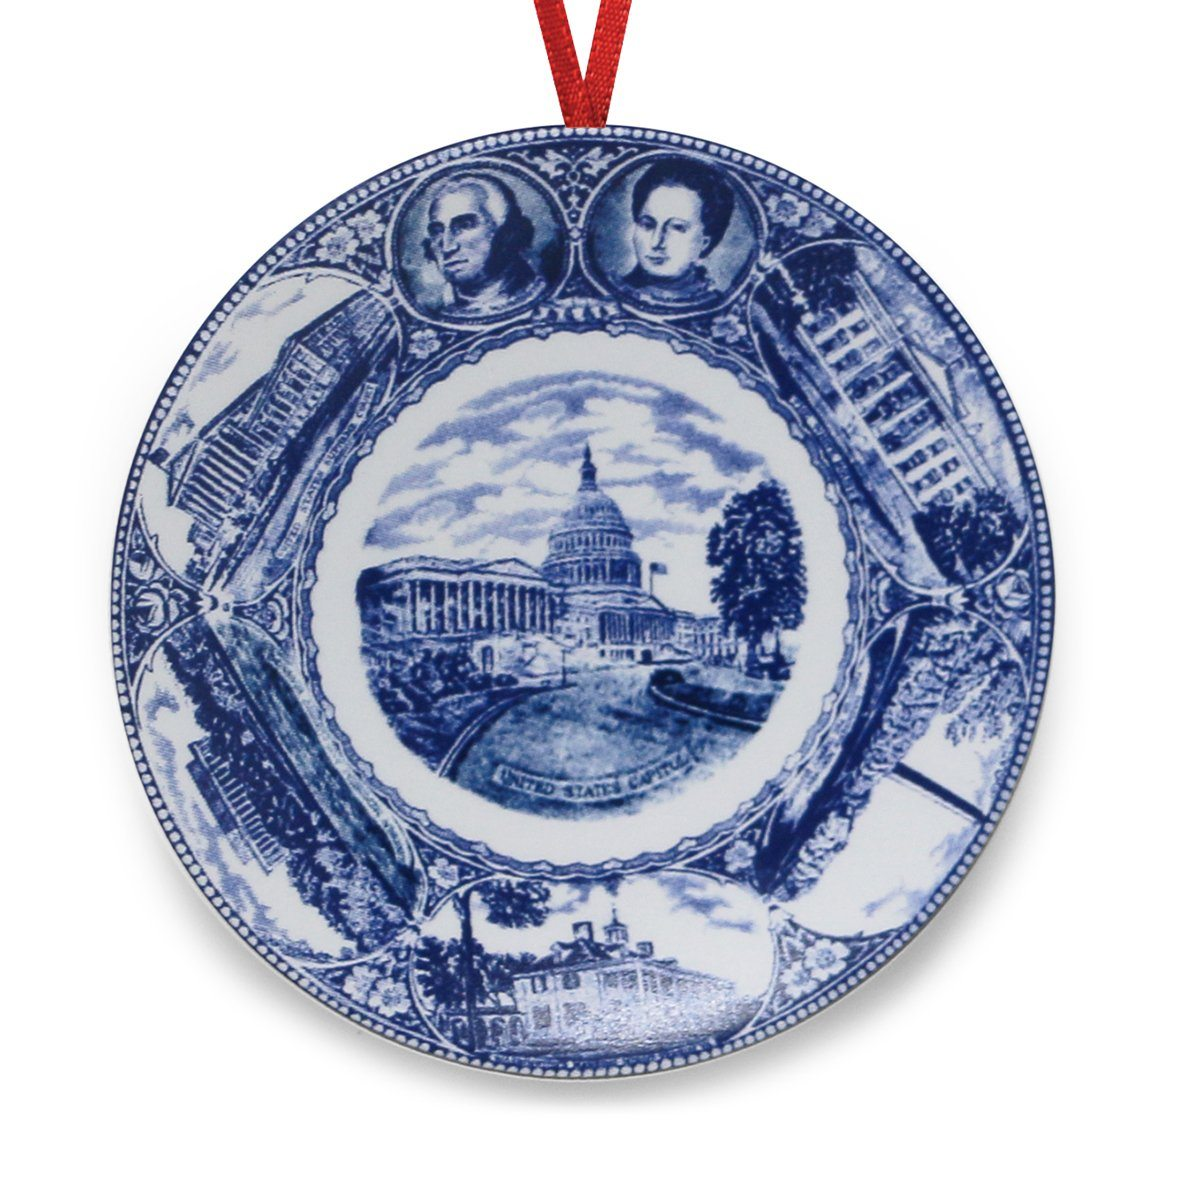 Washington DC Blue Staffordshire Plate Ornament